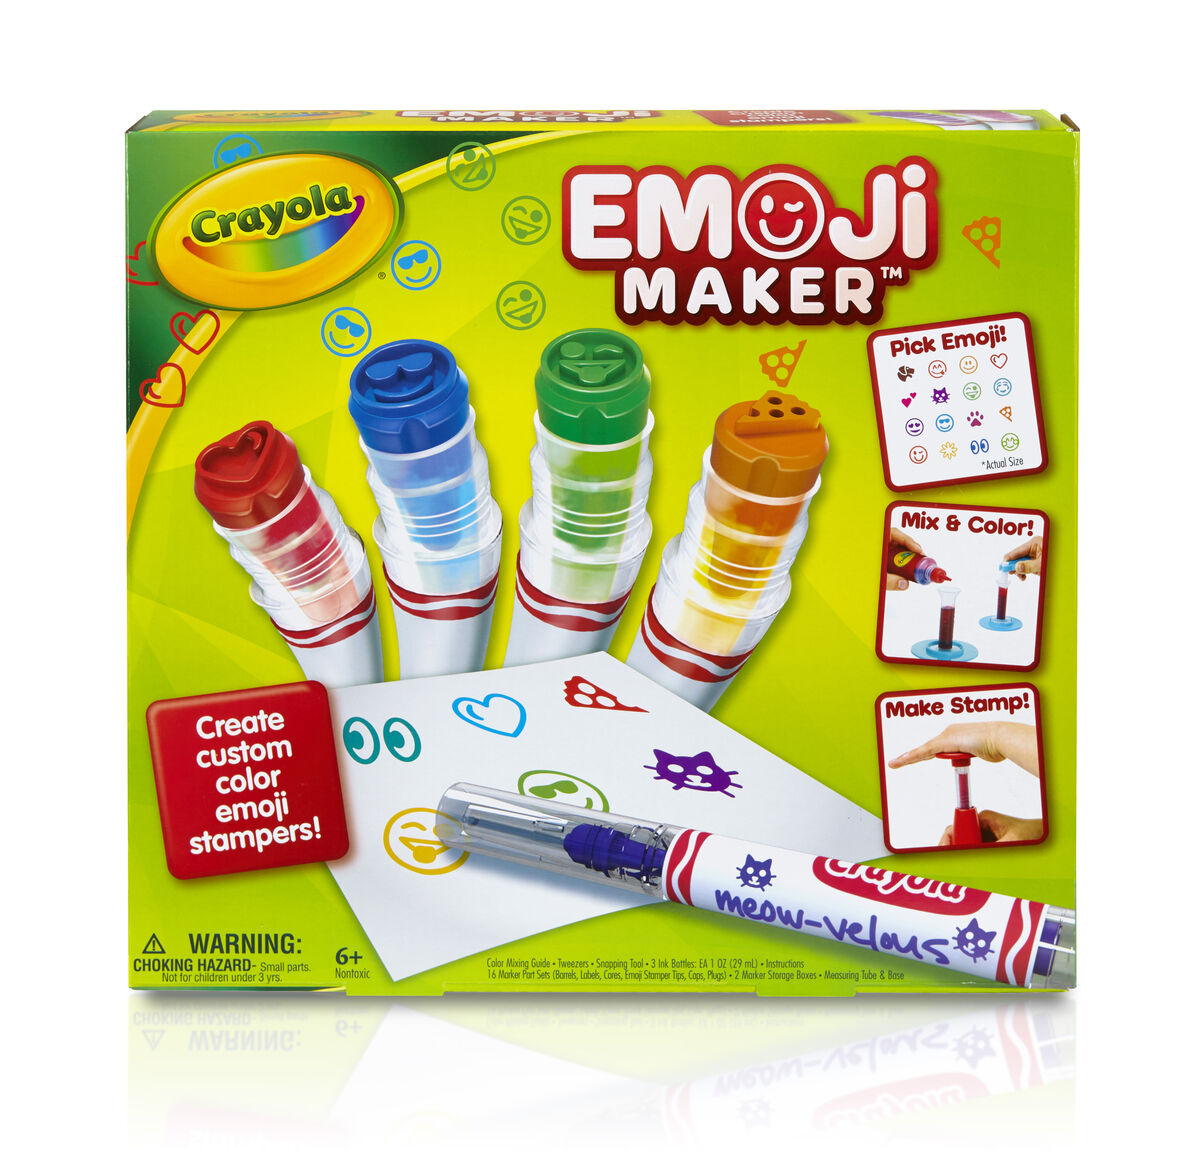 Image result for crayola emoji maker